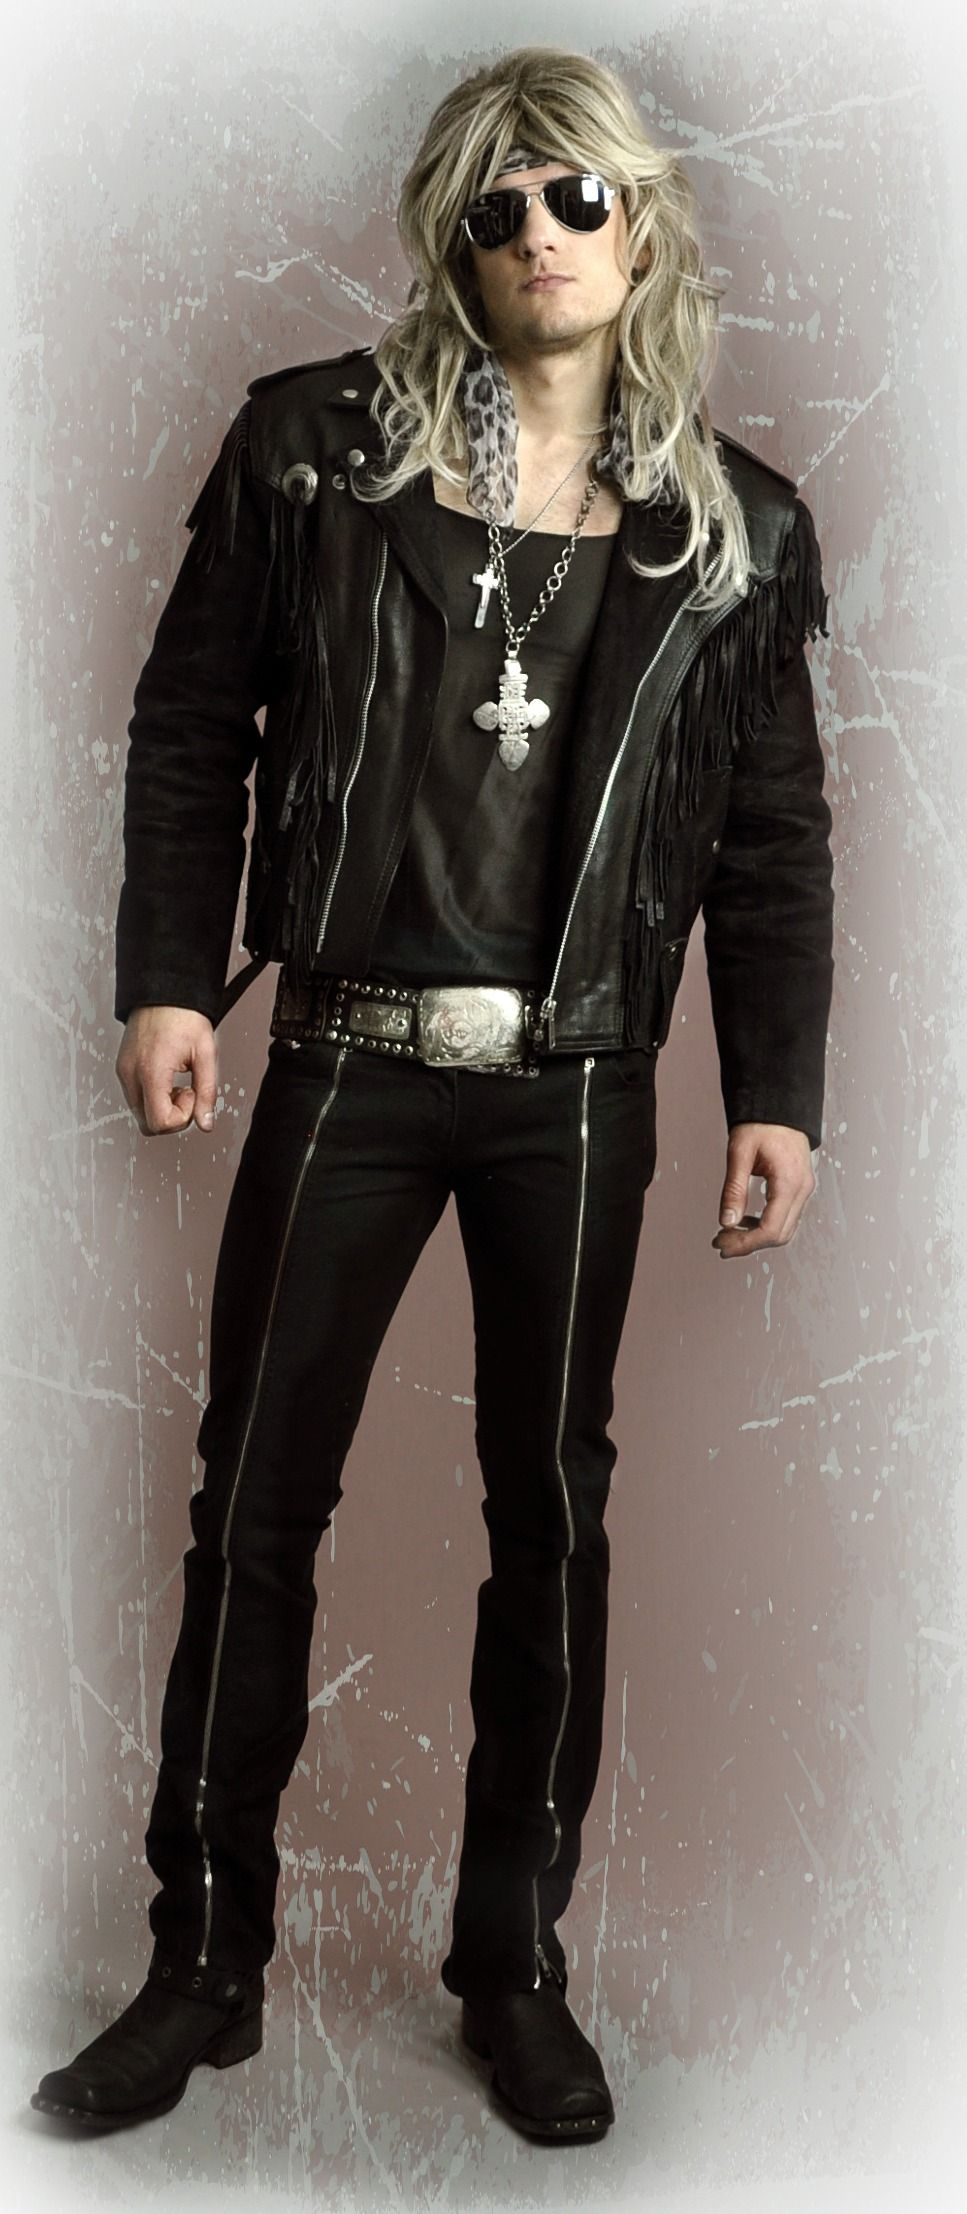 Rock Star Costumes for kids | PARTY LIKE A ROCK STAR | Pinterest ...